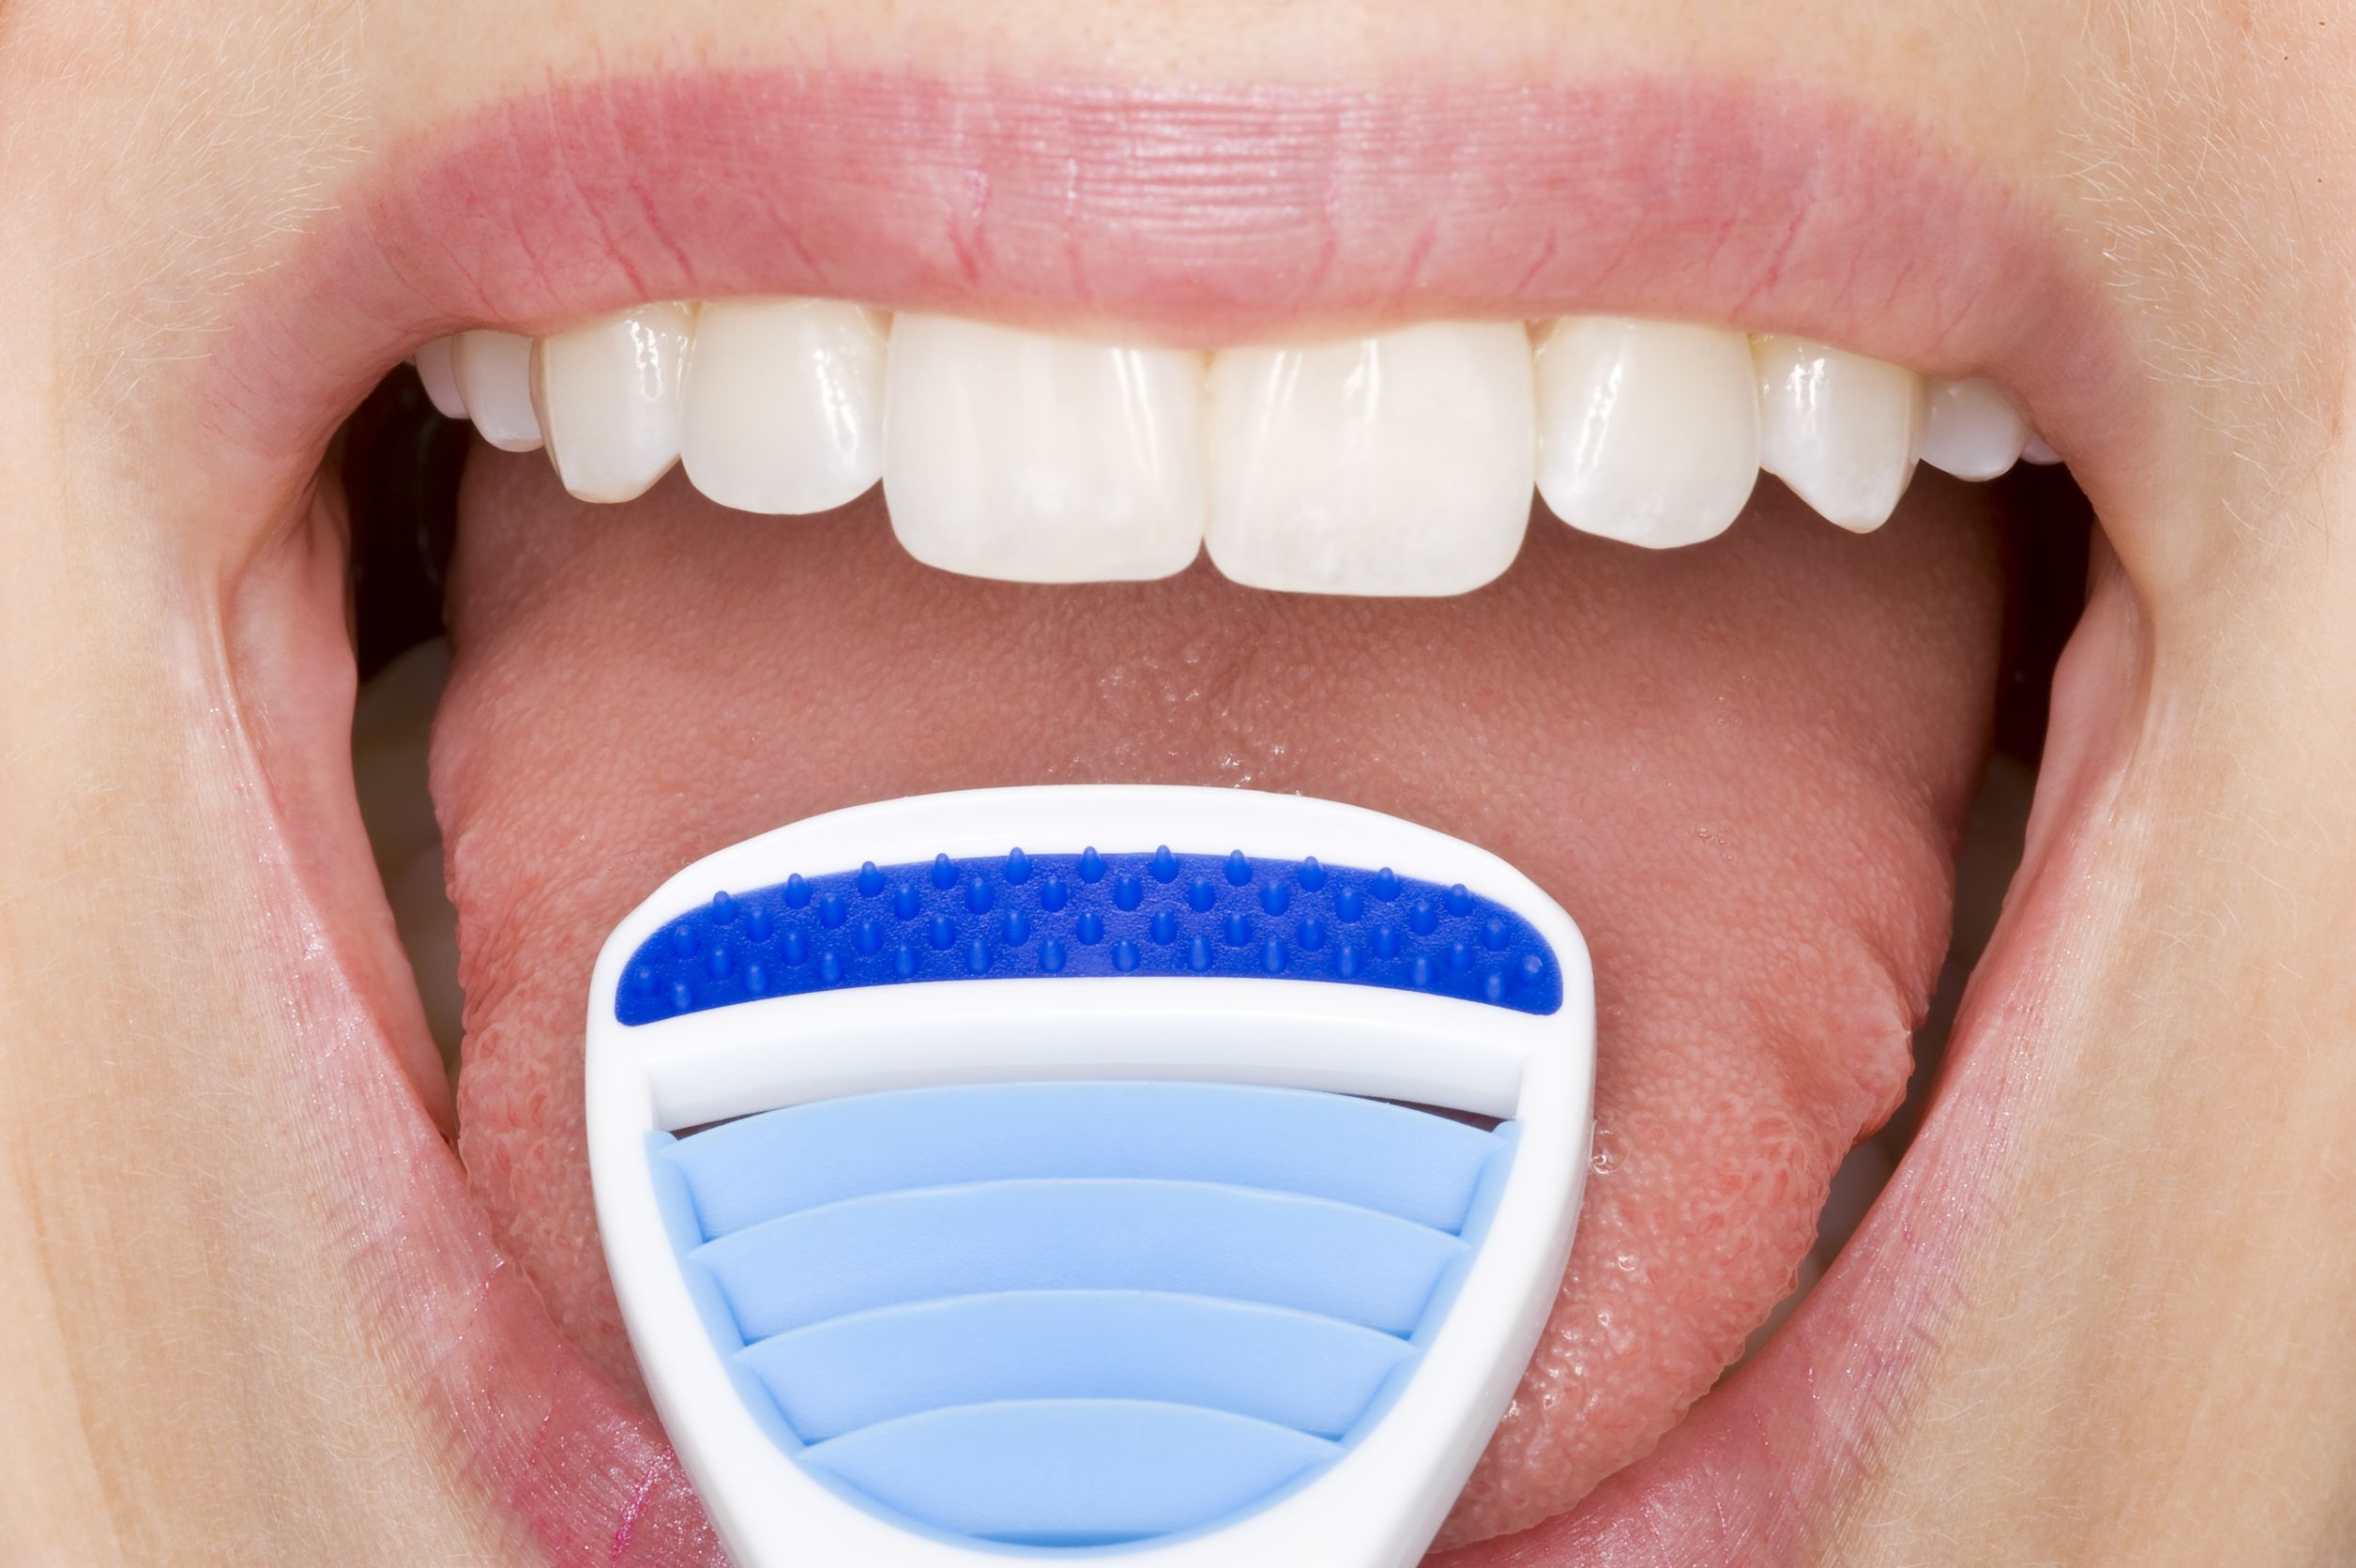 Tongue, dental health, oral health